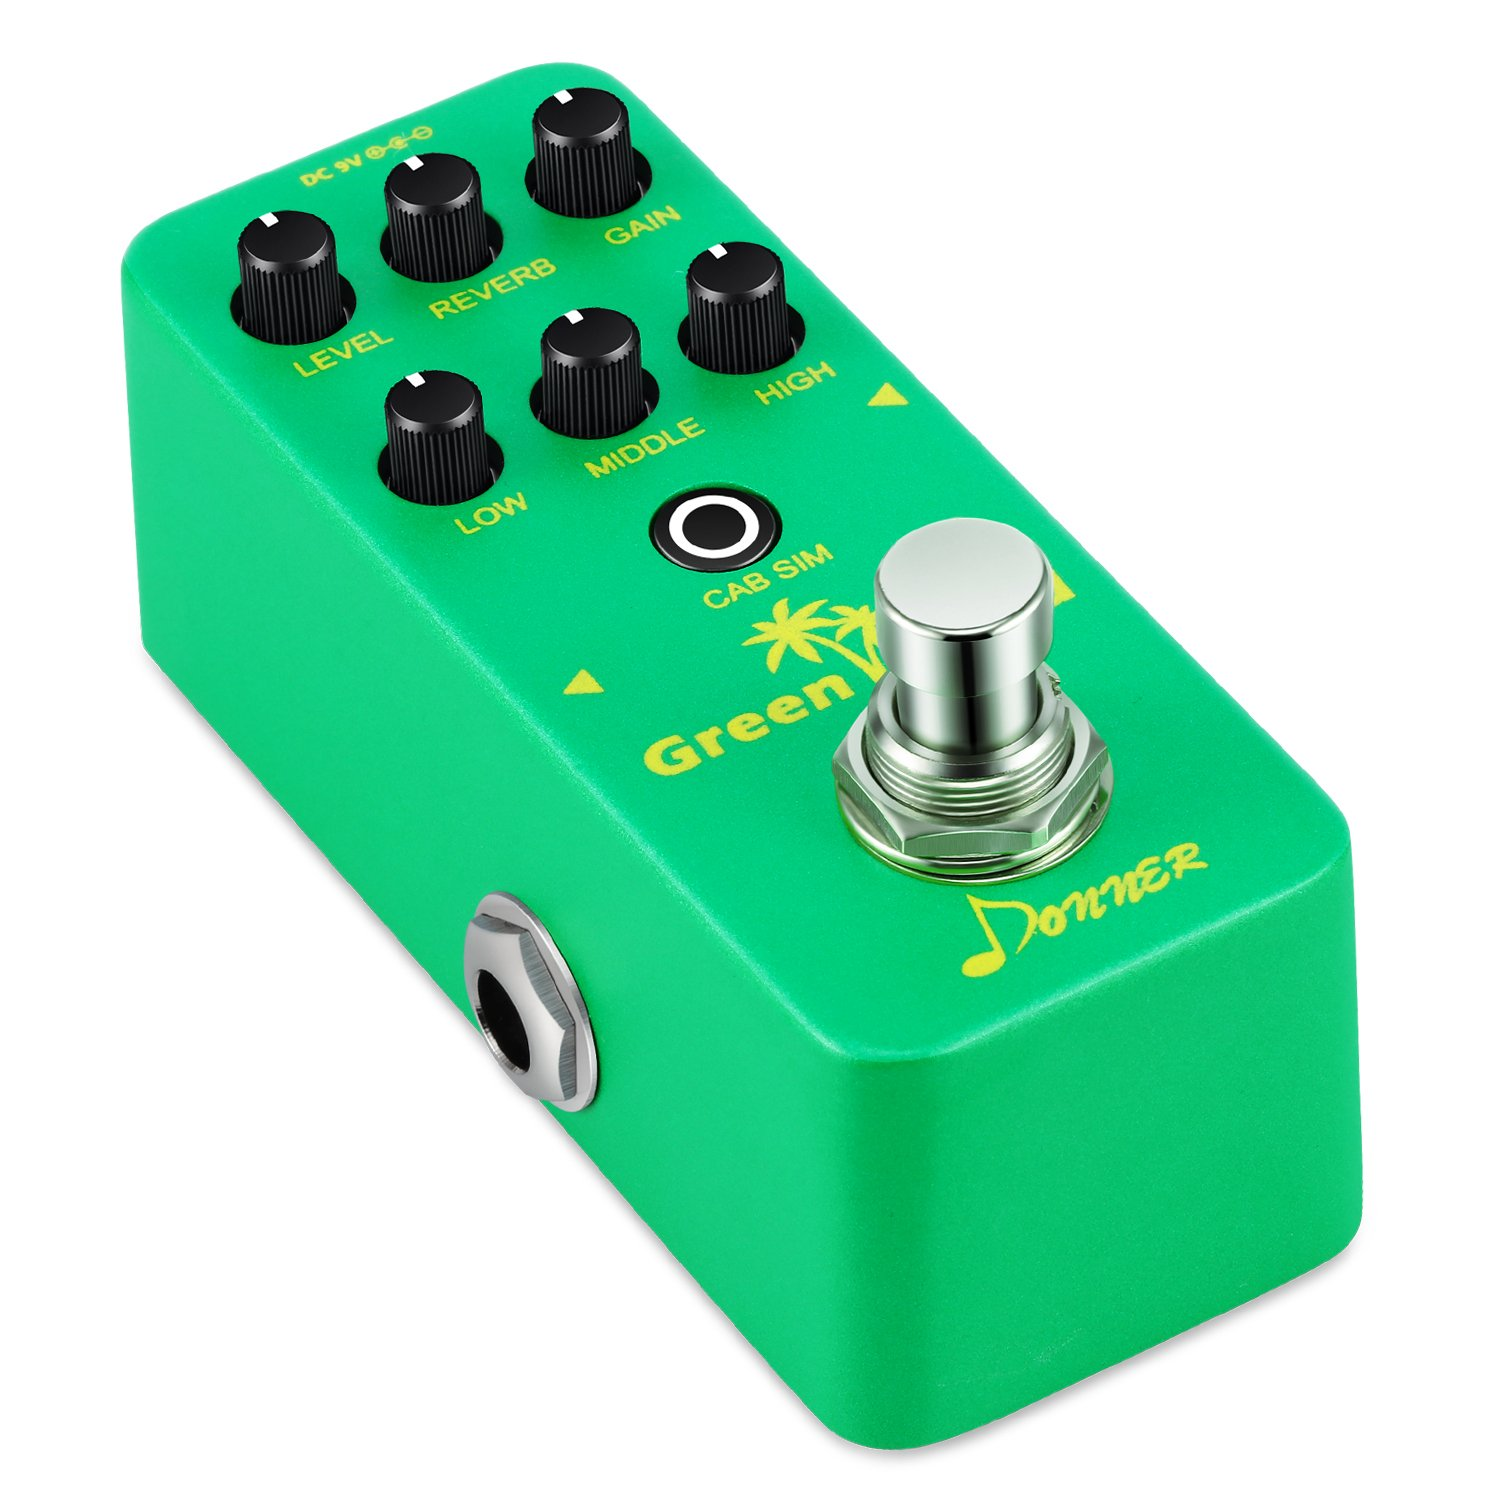 Donner Green Land Mini Electric Guitar Preamp Pedal Effect by Donner